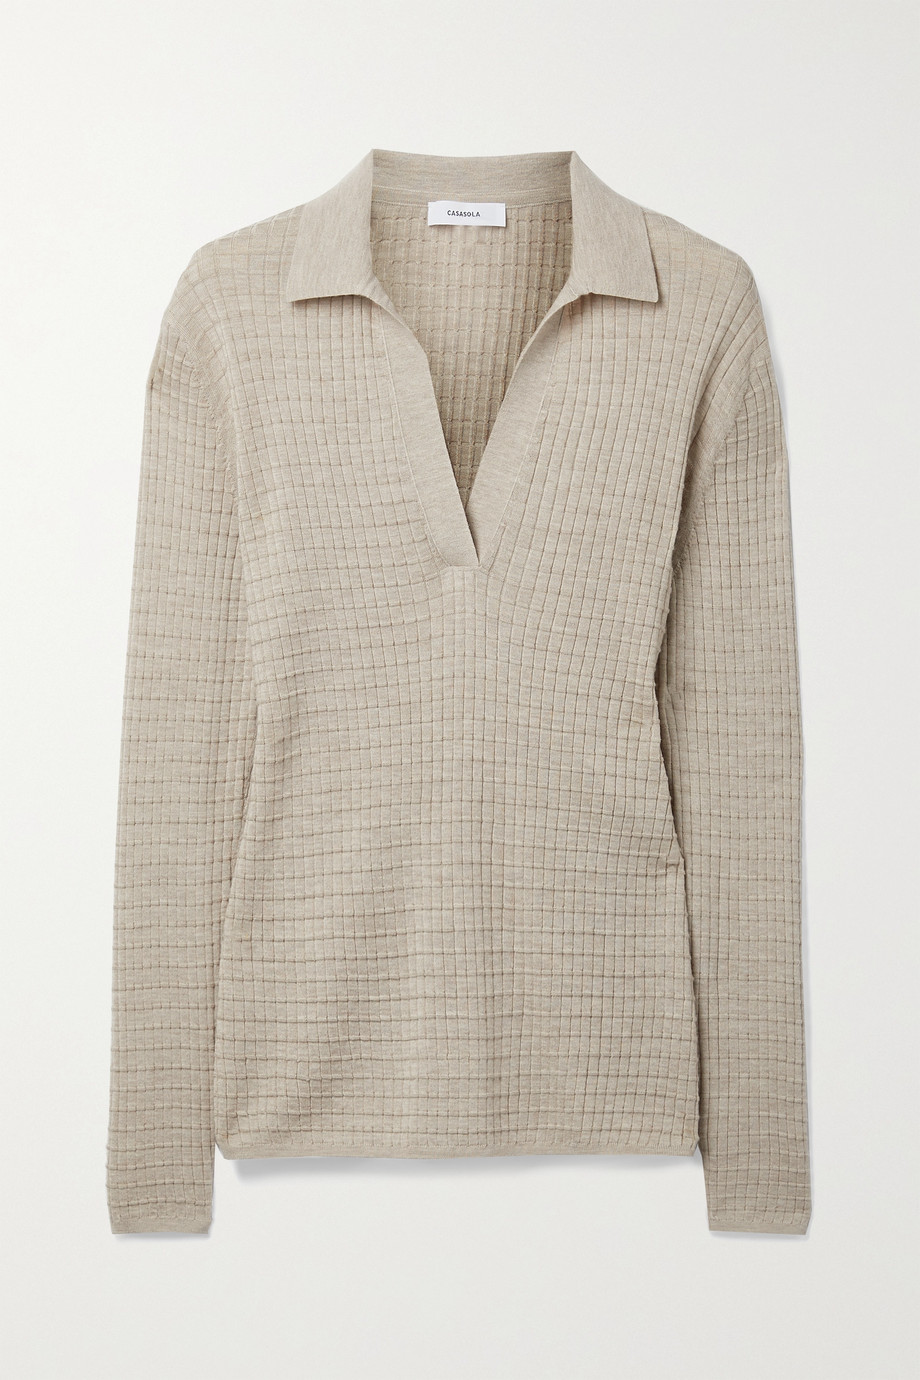 CASASOLA Alvina waffle-knit cashmere and silk-blend sweater